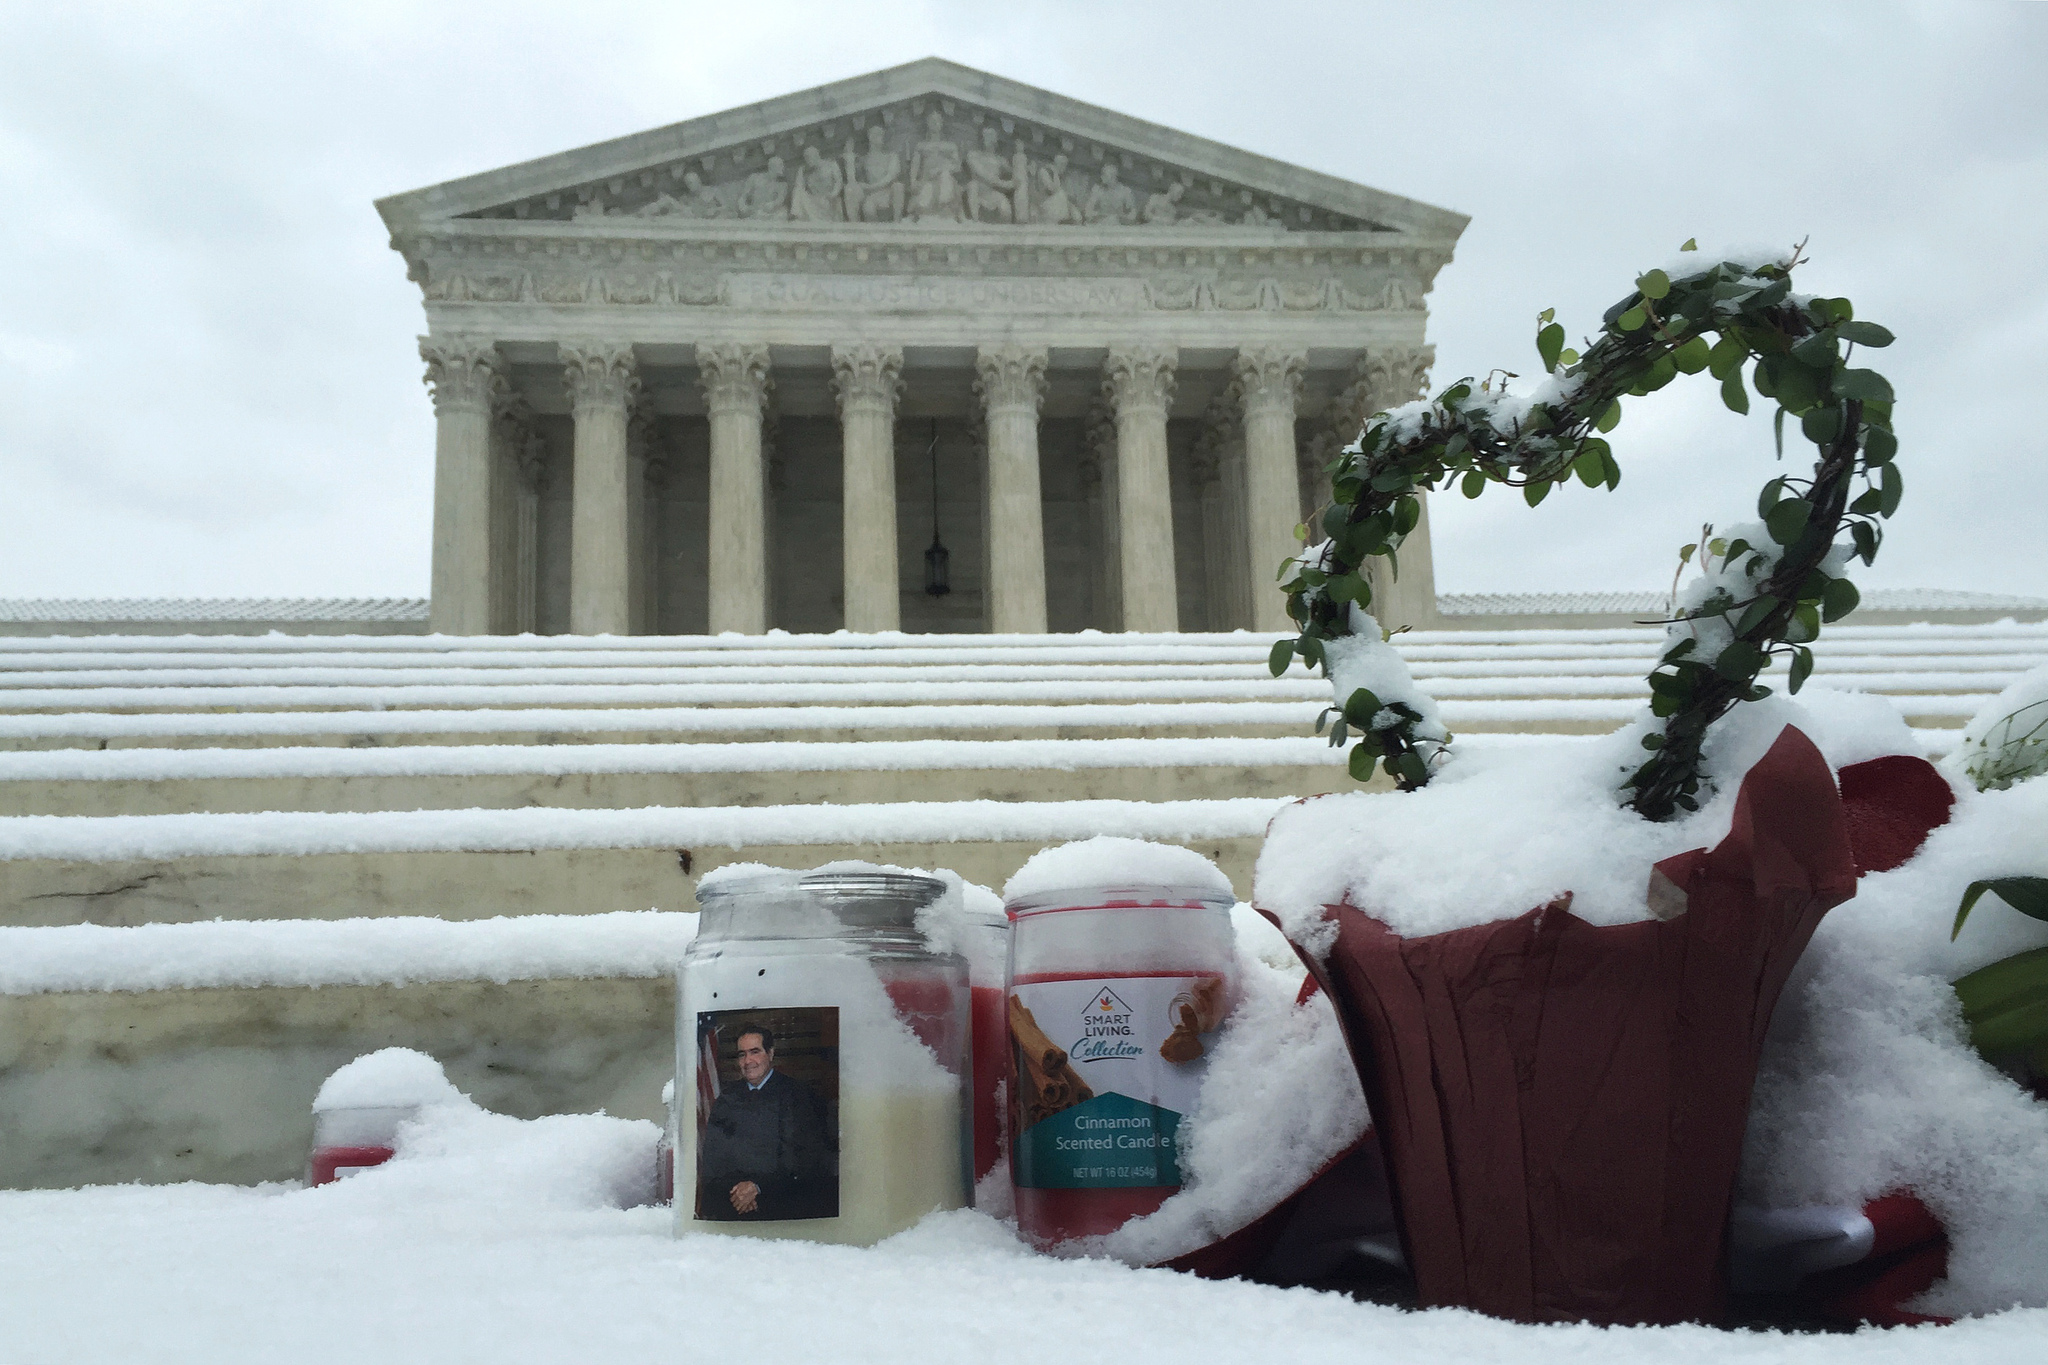 Snowy Scalia memorial with cinnamon scented candle